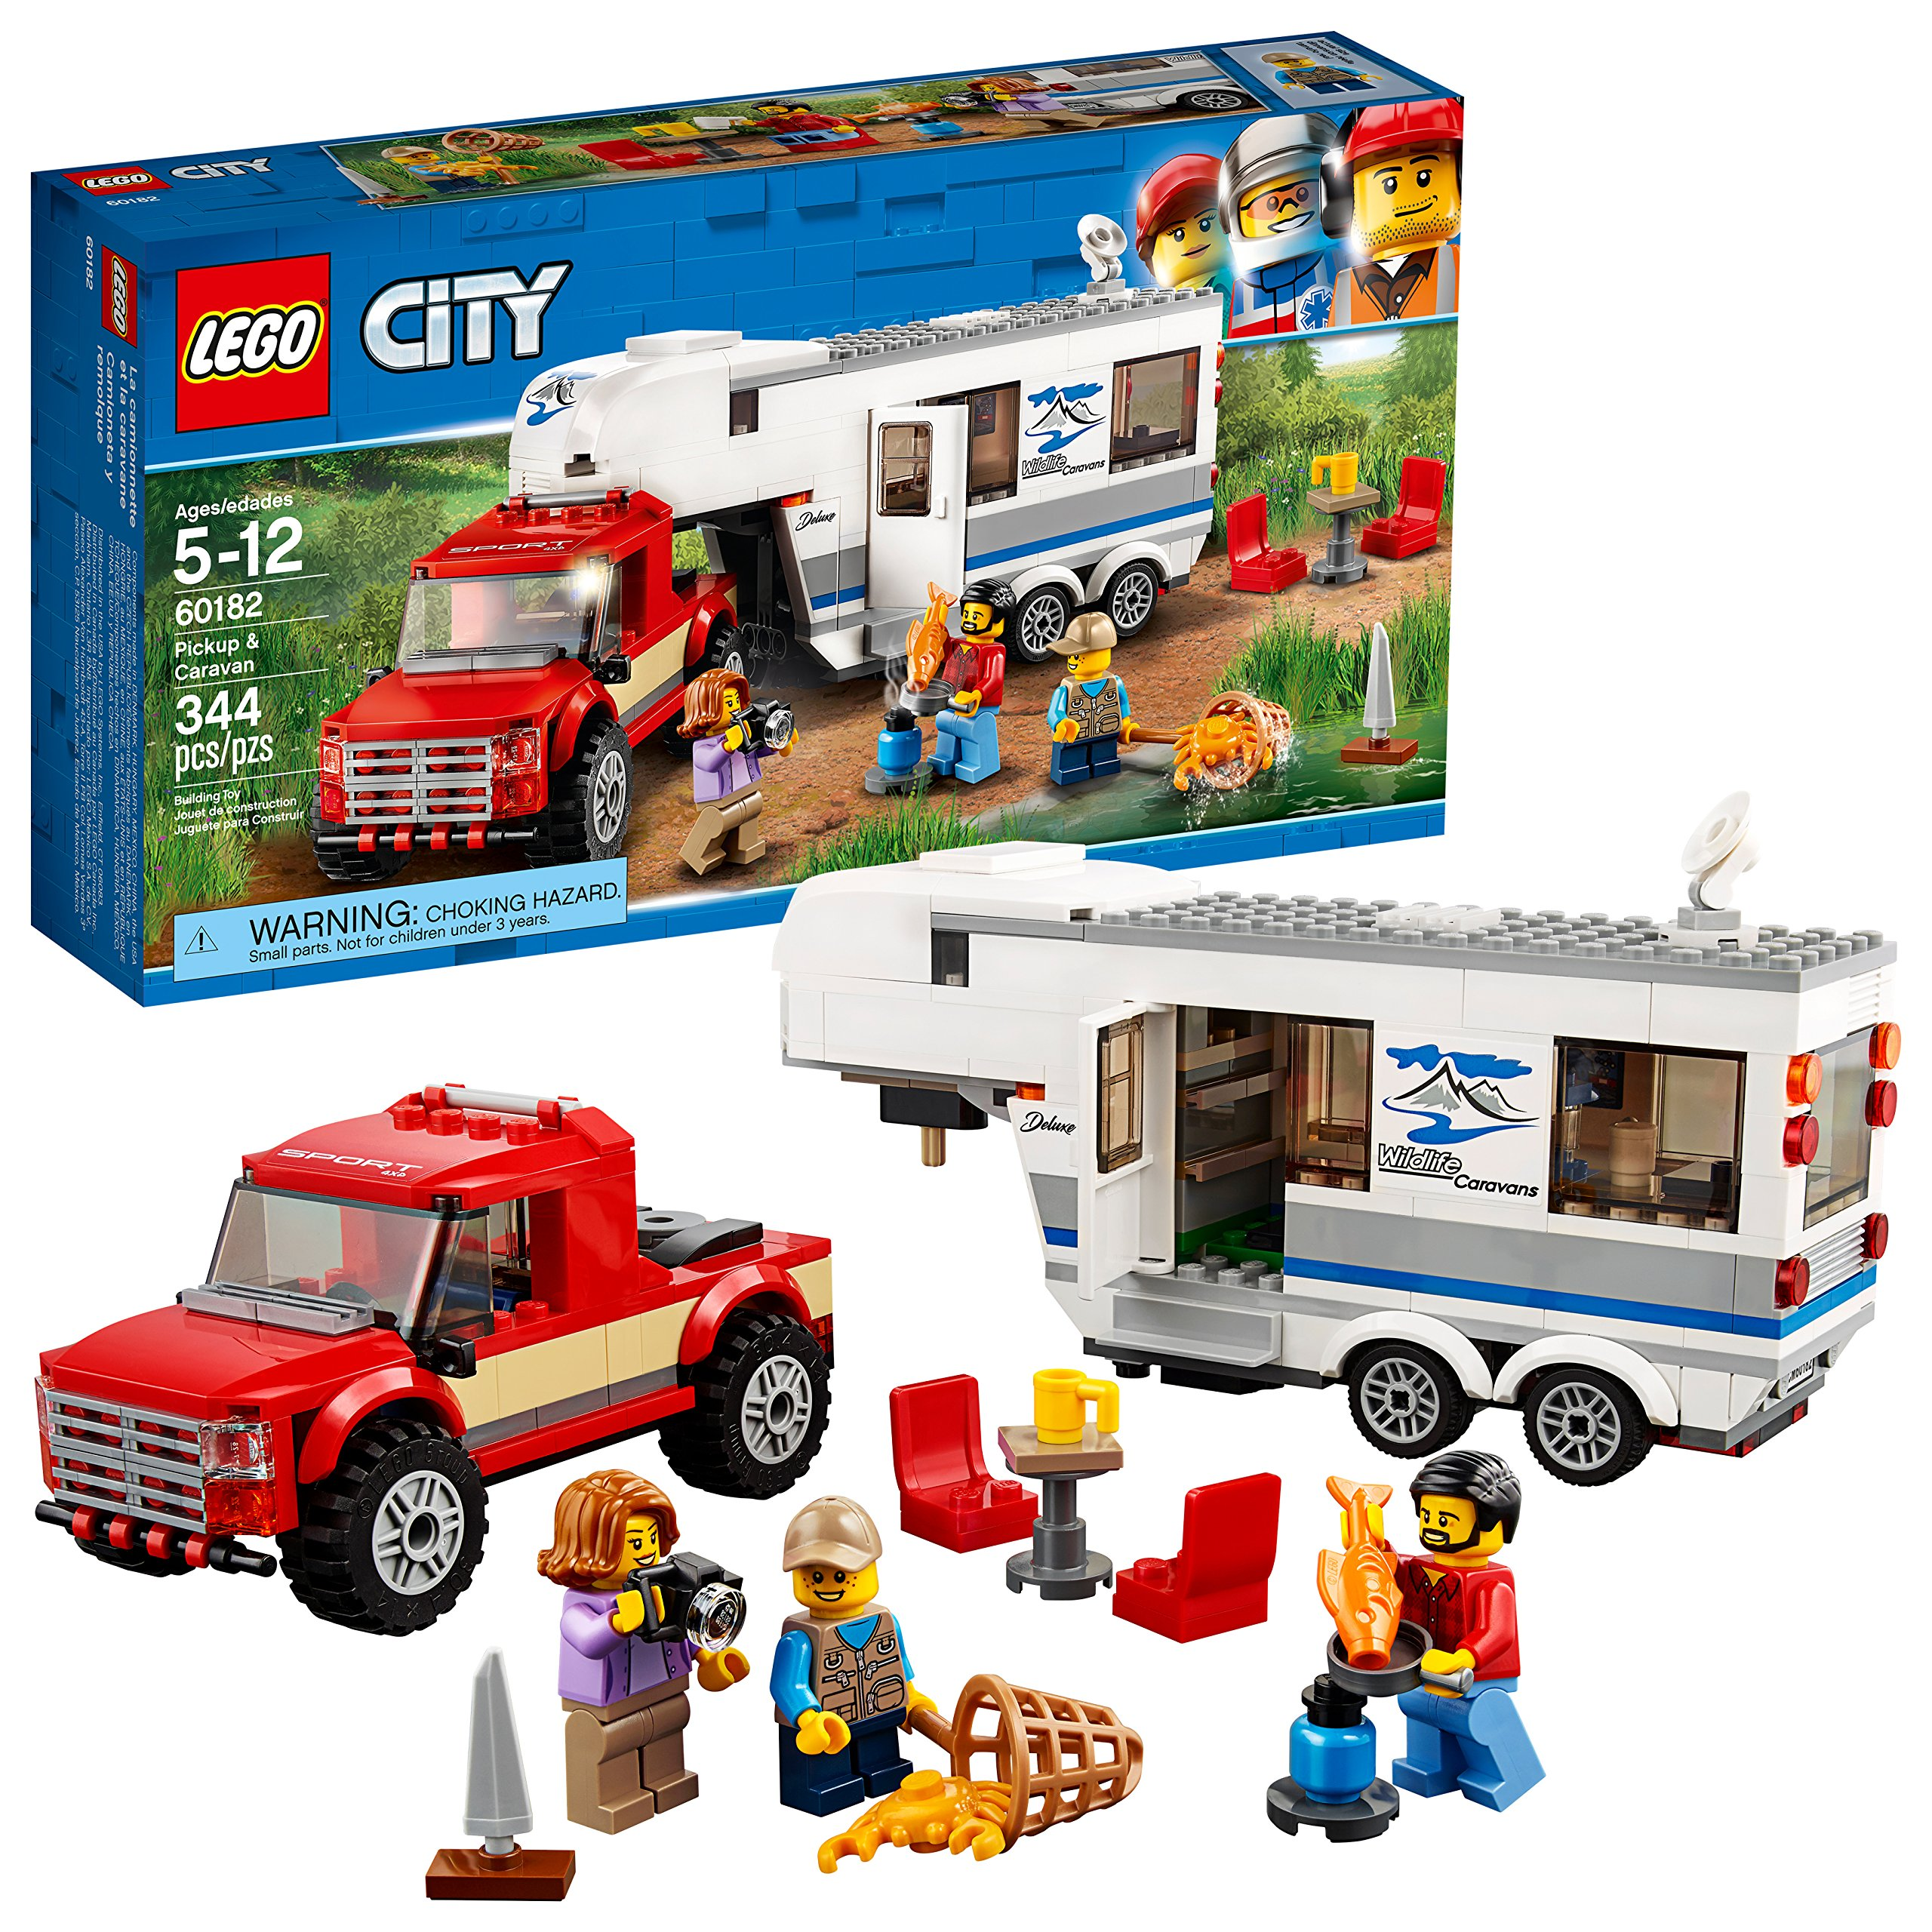 LEGO City Pickup & Caravan 60182 Building Kit (344 Pieces) by LEGO